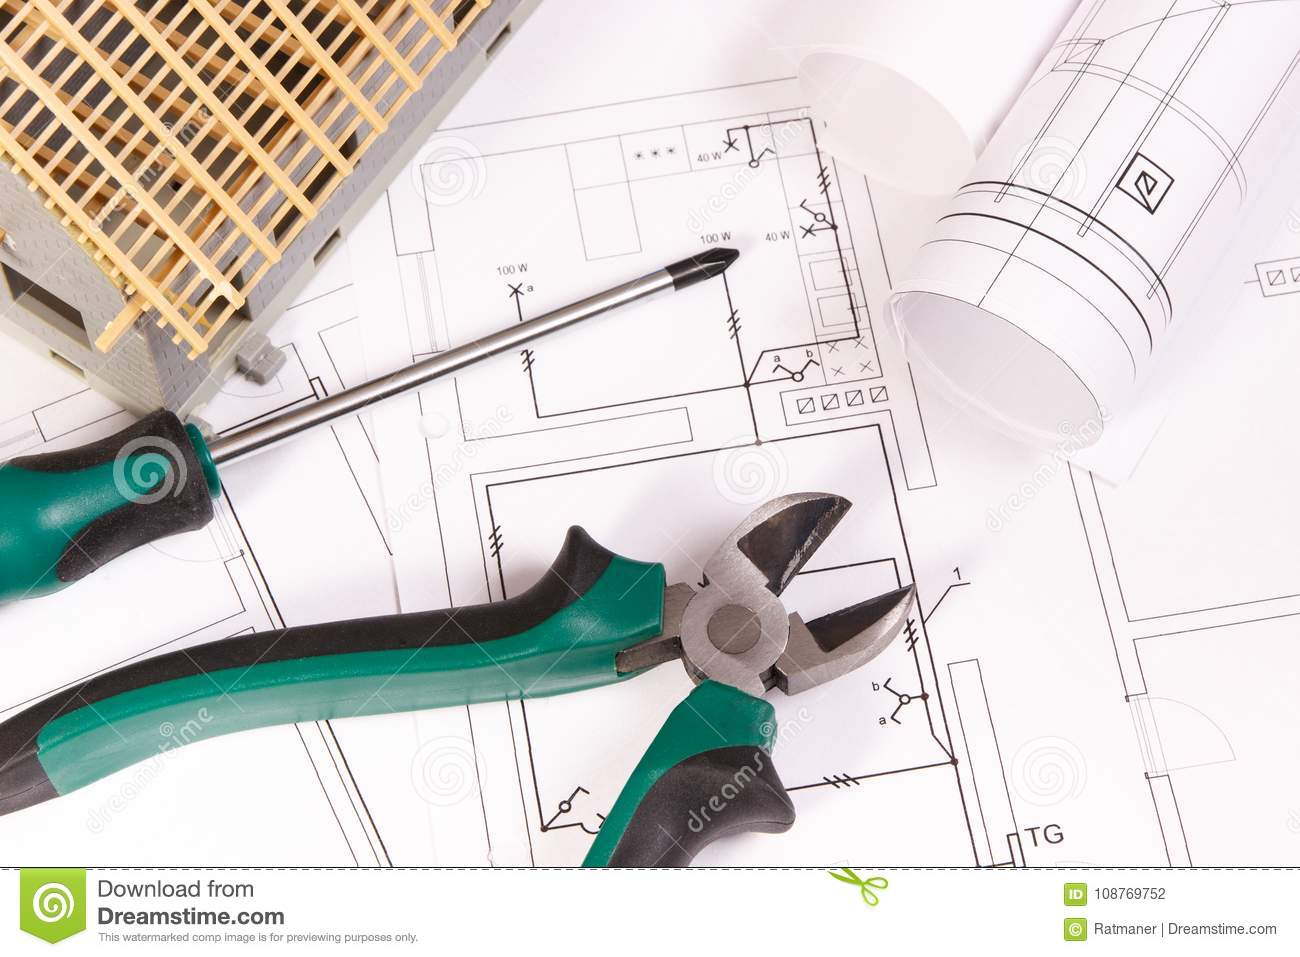 Electrical Drawings Work Tools And House Under Construction Diagram Building Home Concept